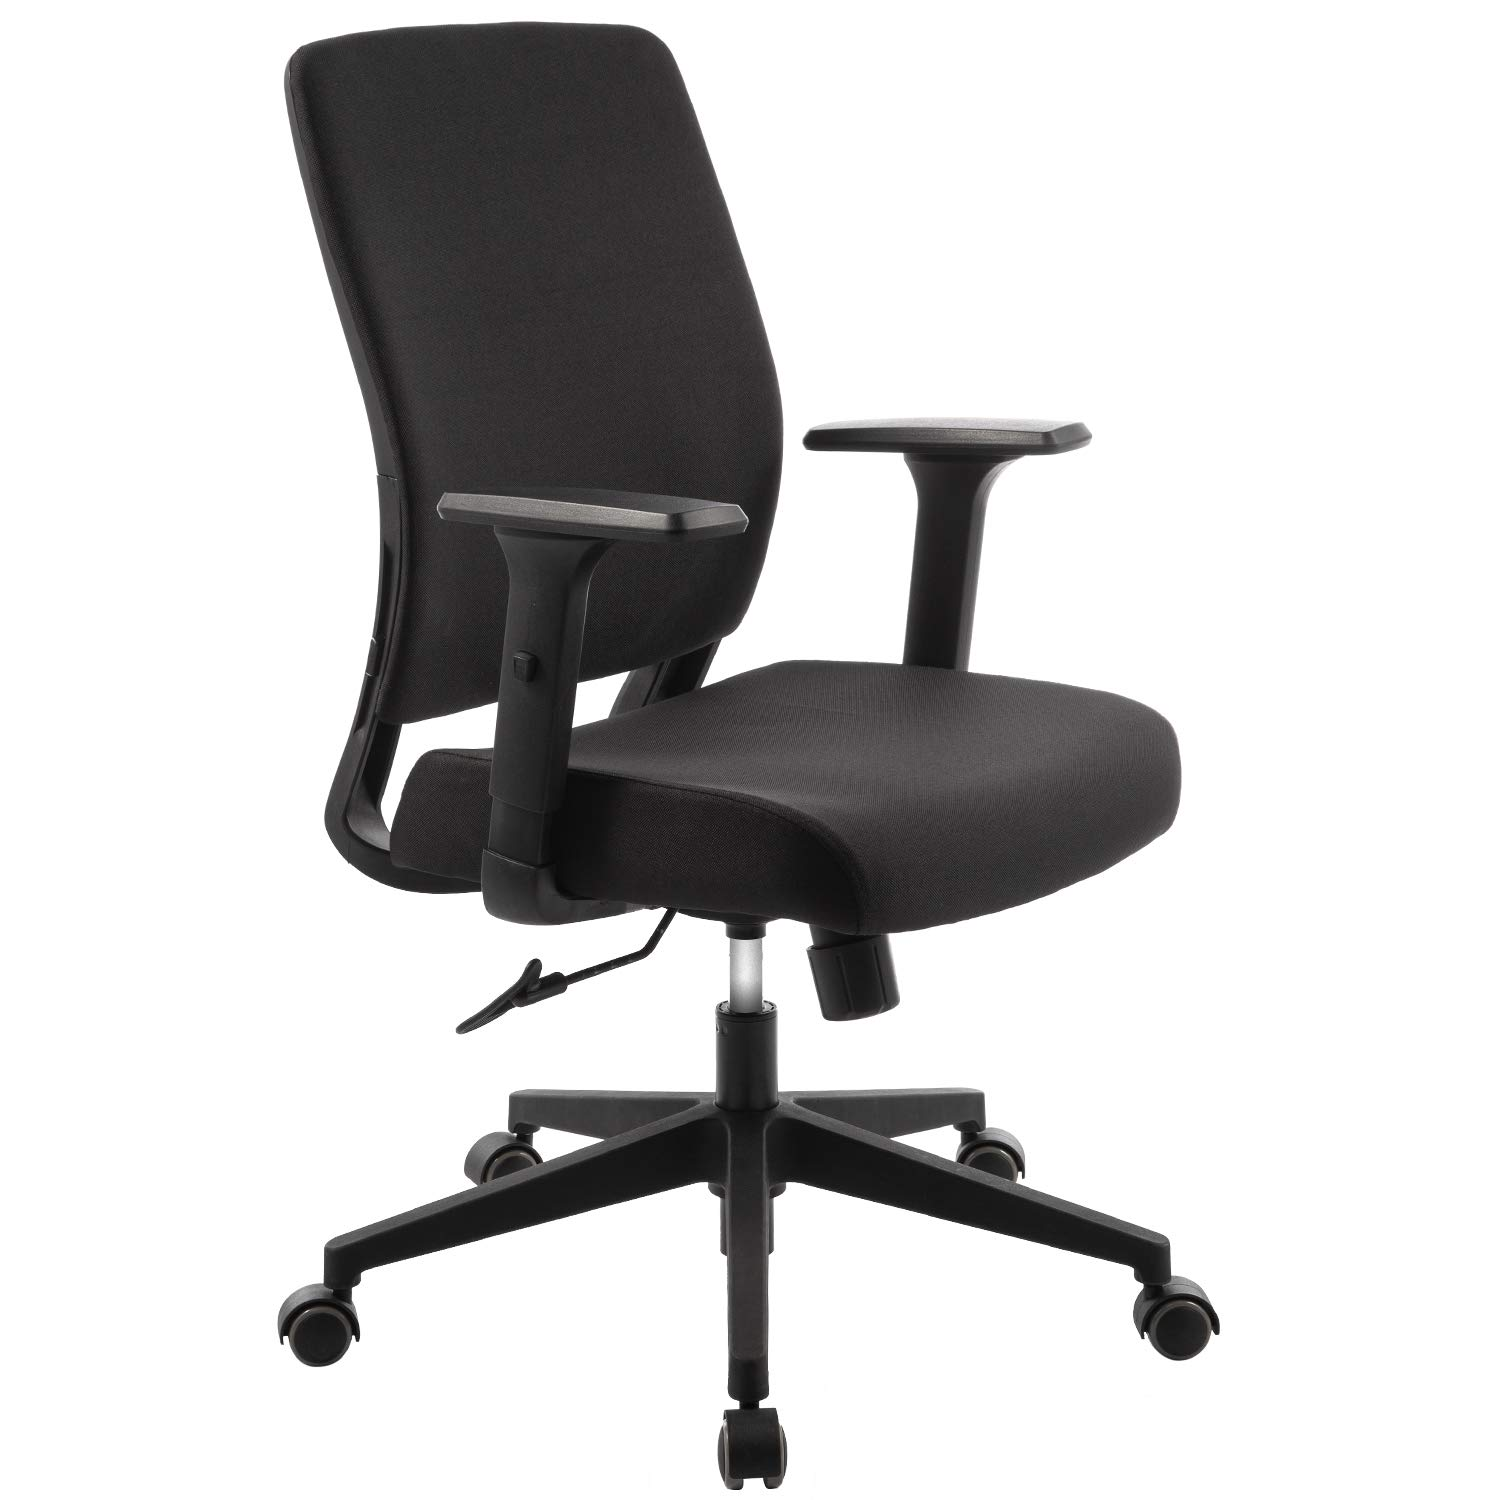 TOPSKY Mid-Back Ergonomic Fabric Office Chair with Adjustable Arm and  Lumbar Support (Black Fabric)